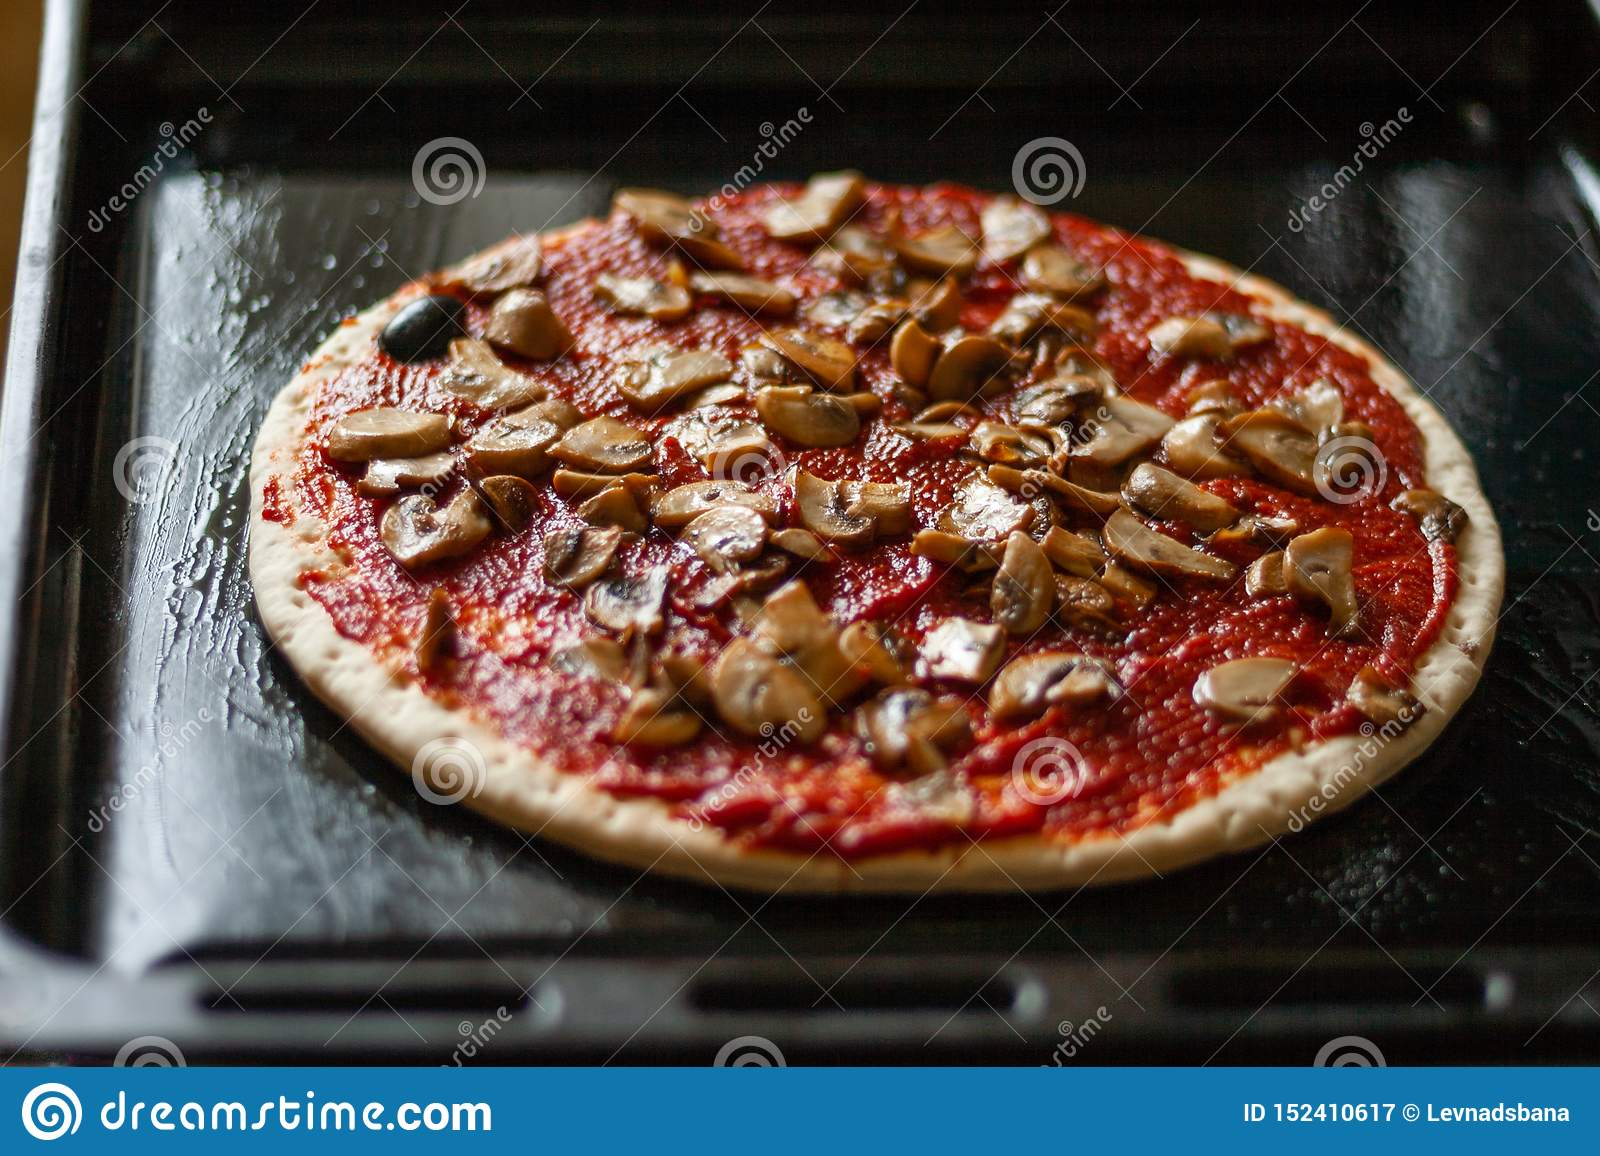 Pizza With Champignon Mushrooms Stock Image - Image of mushroom, cooking: 152410617